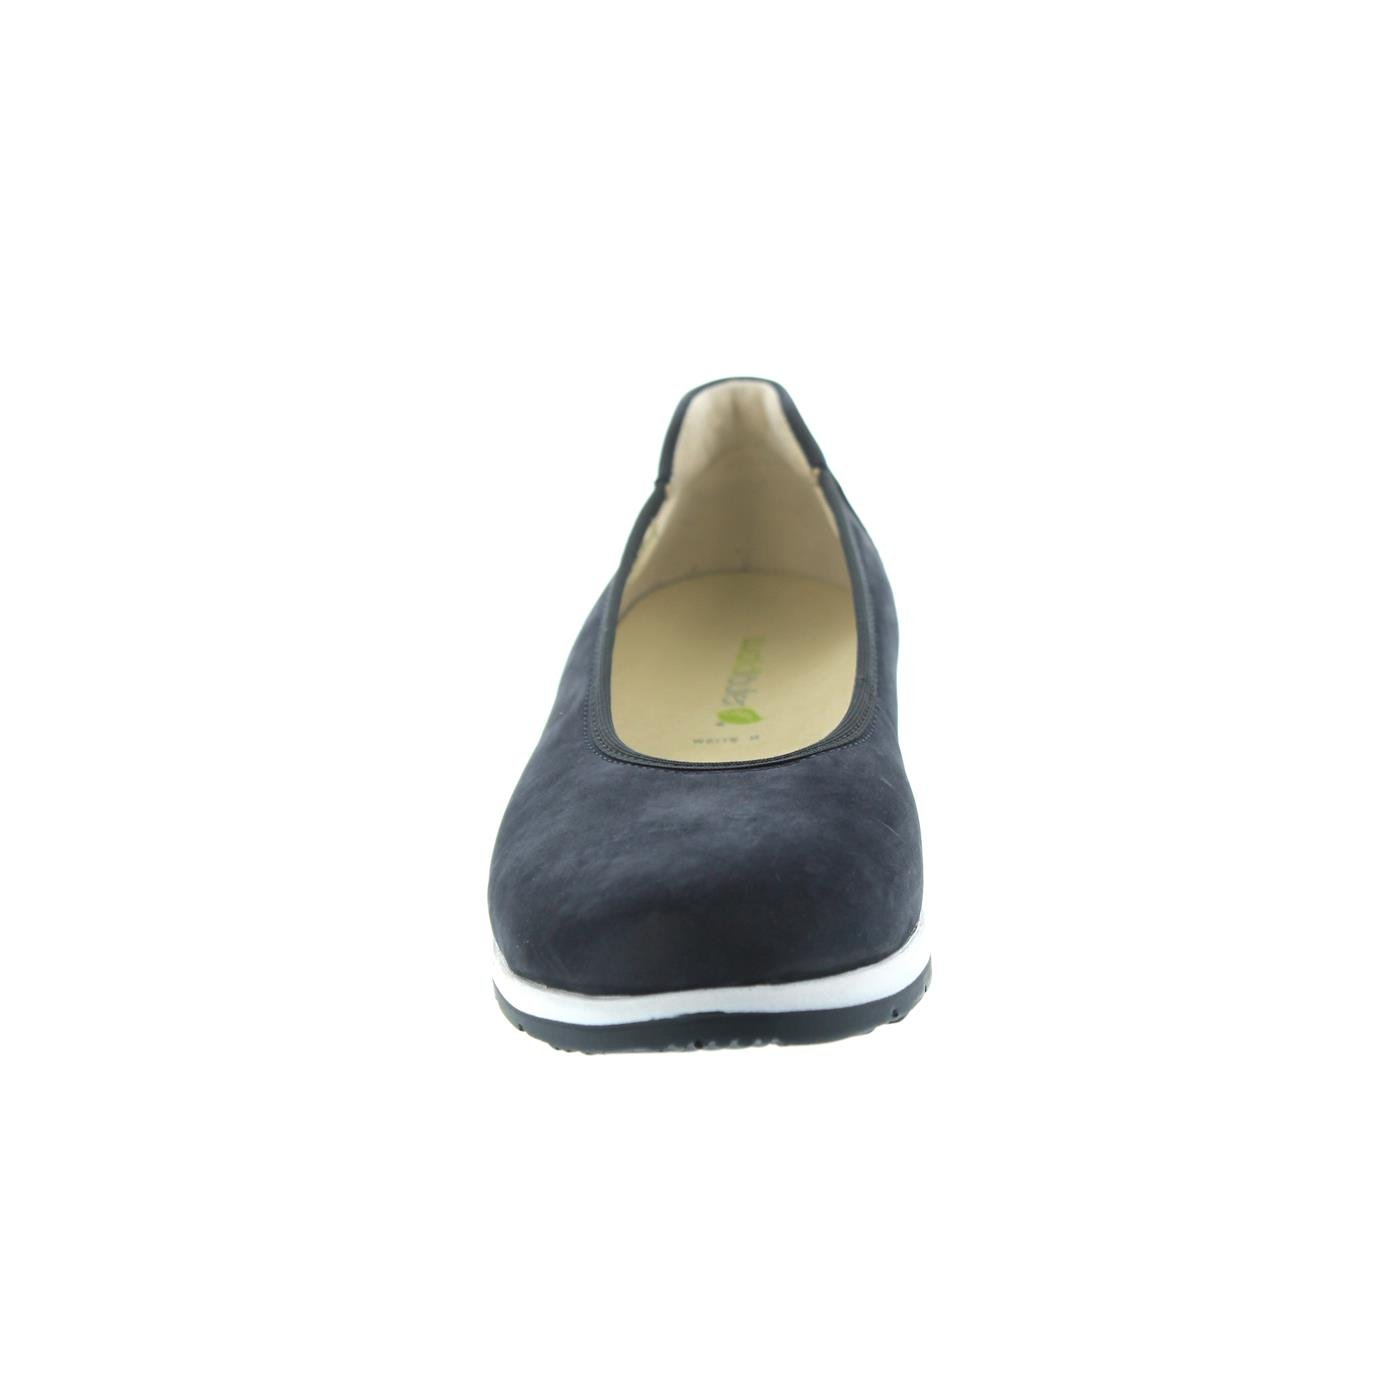 Waldläufer Slipper Damen Slipper Waldläufer Hara 966501191/217 Blau 466800 0517f0